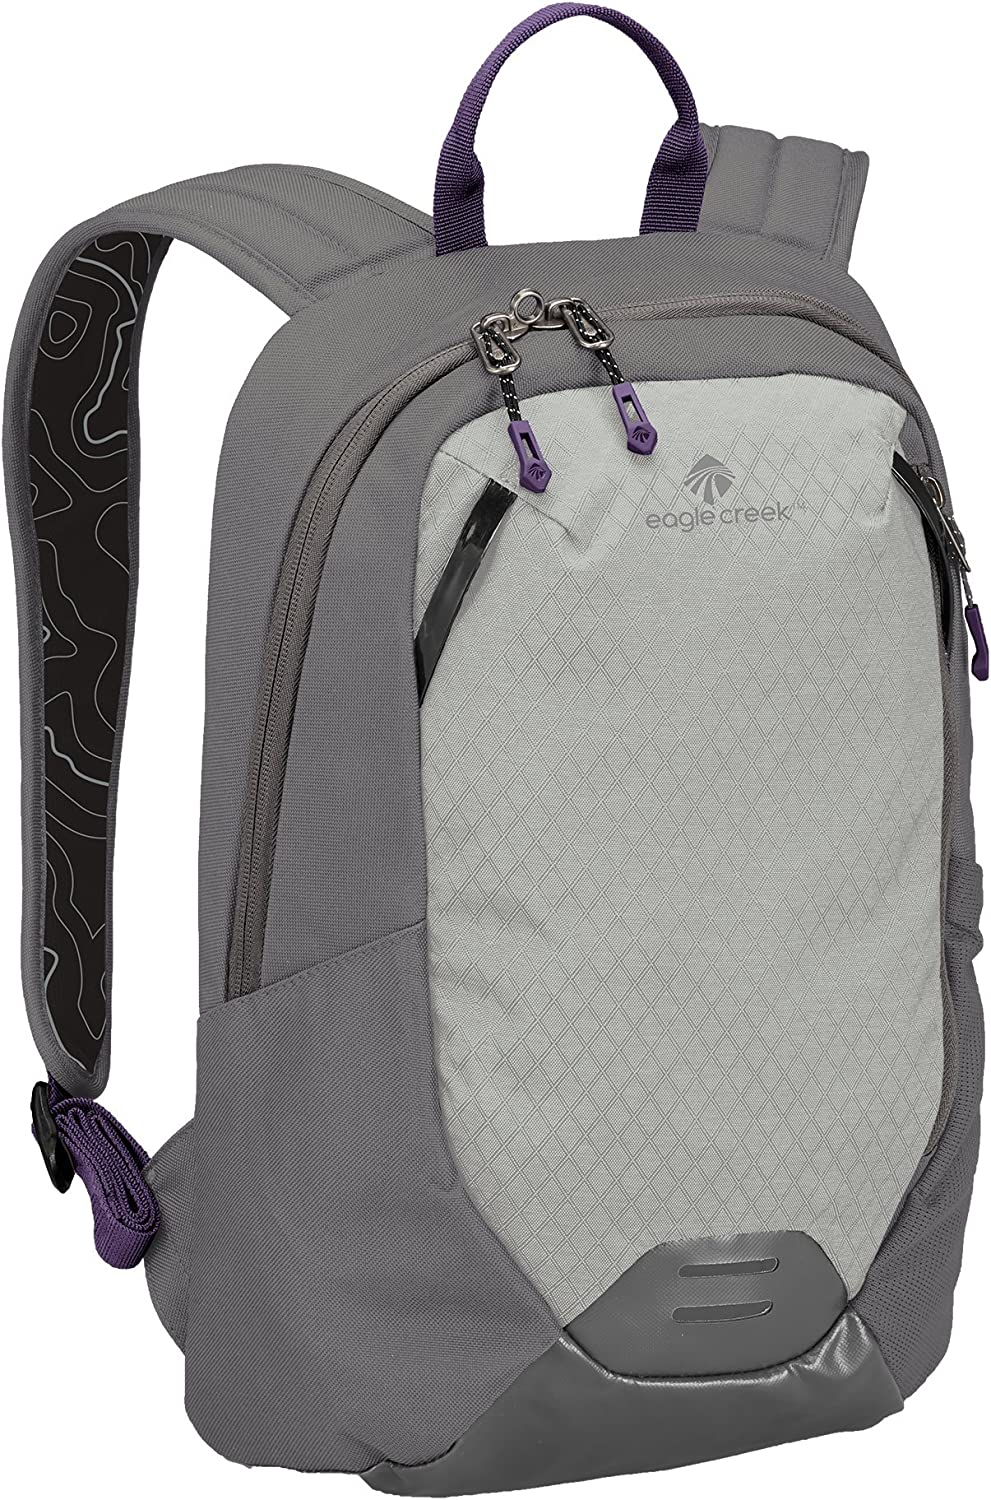 Eagle Creek Unisex Travel Laptop Backpack-multiuse-Hidden Tech Pocket, Graphite/Amethyst, One Size